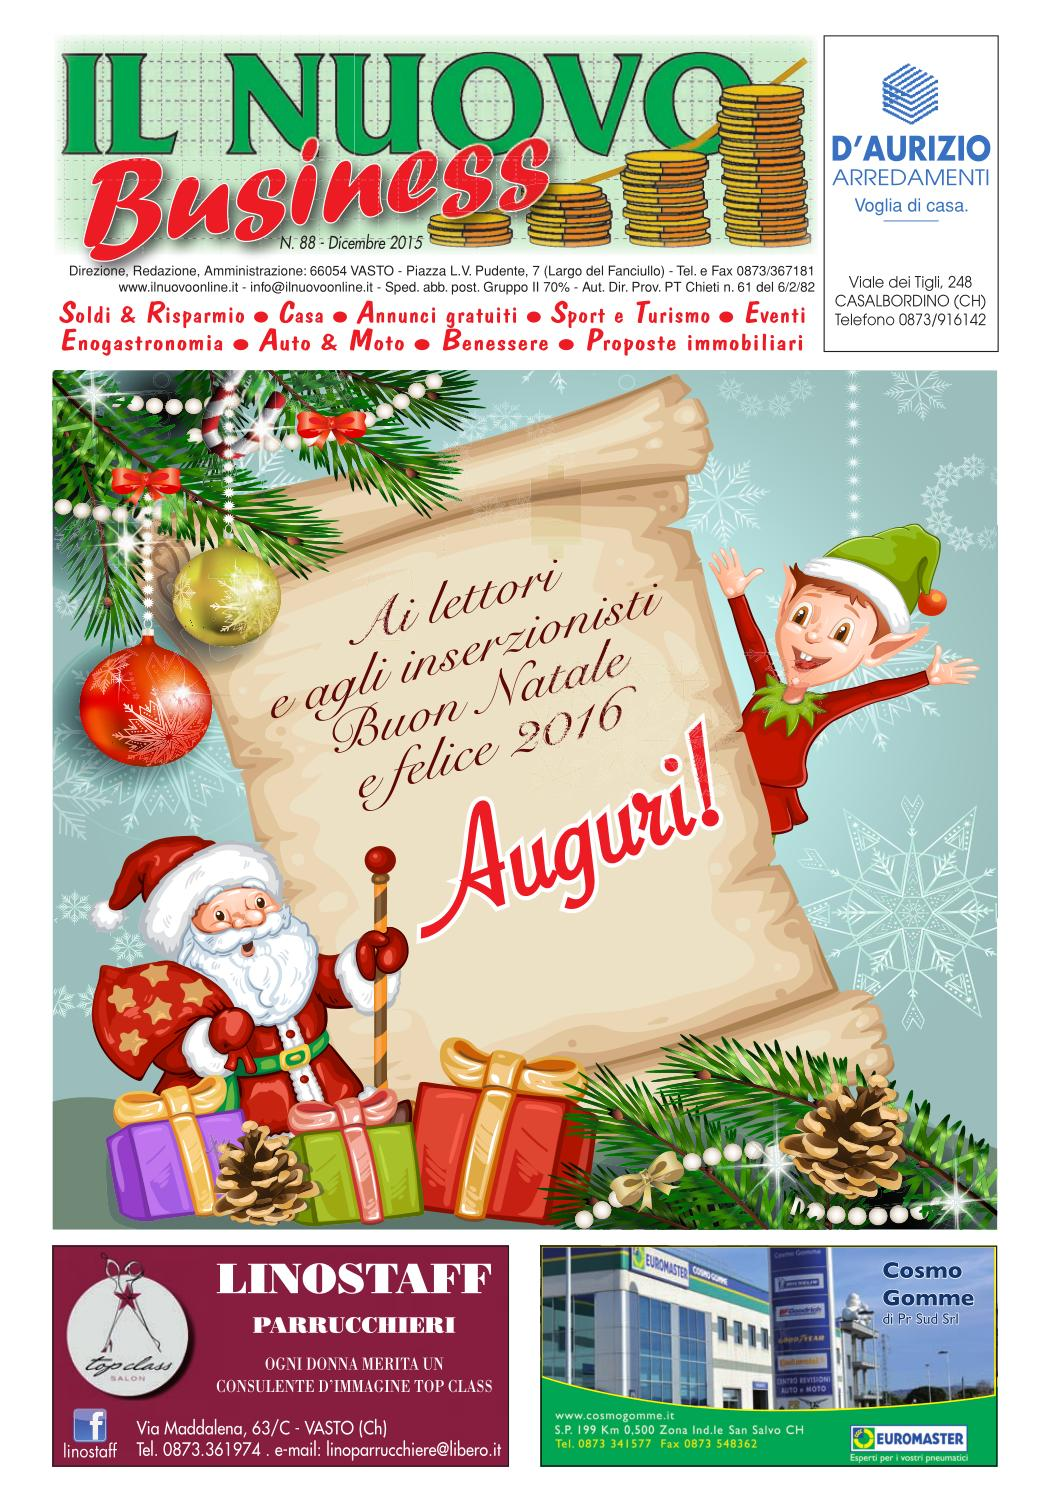 Businessdicembre2015 by nicolangelo gualtieri issuu for Gualtieri arredamenti